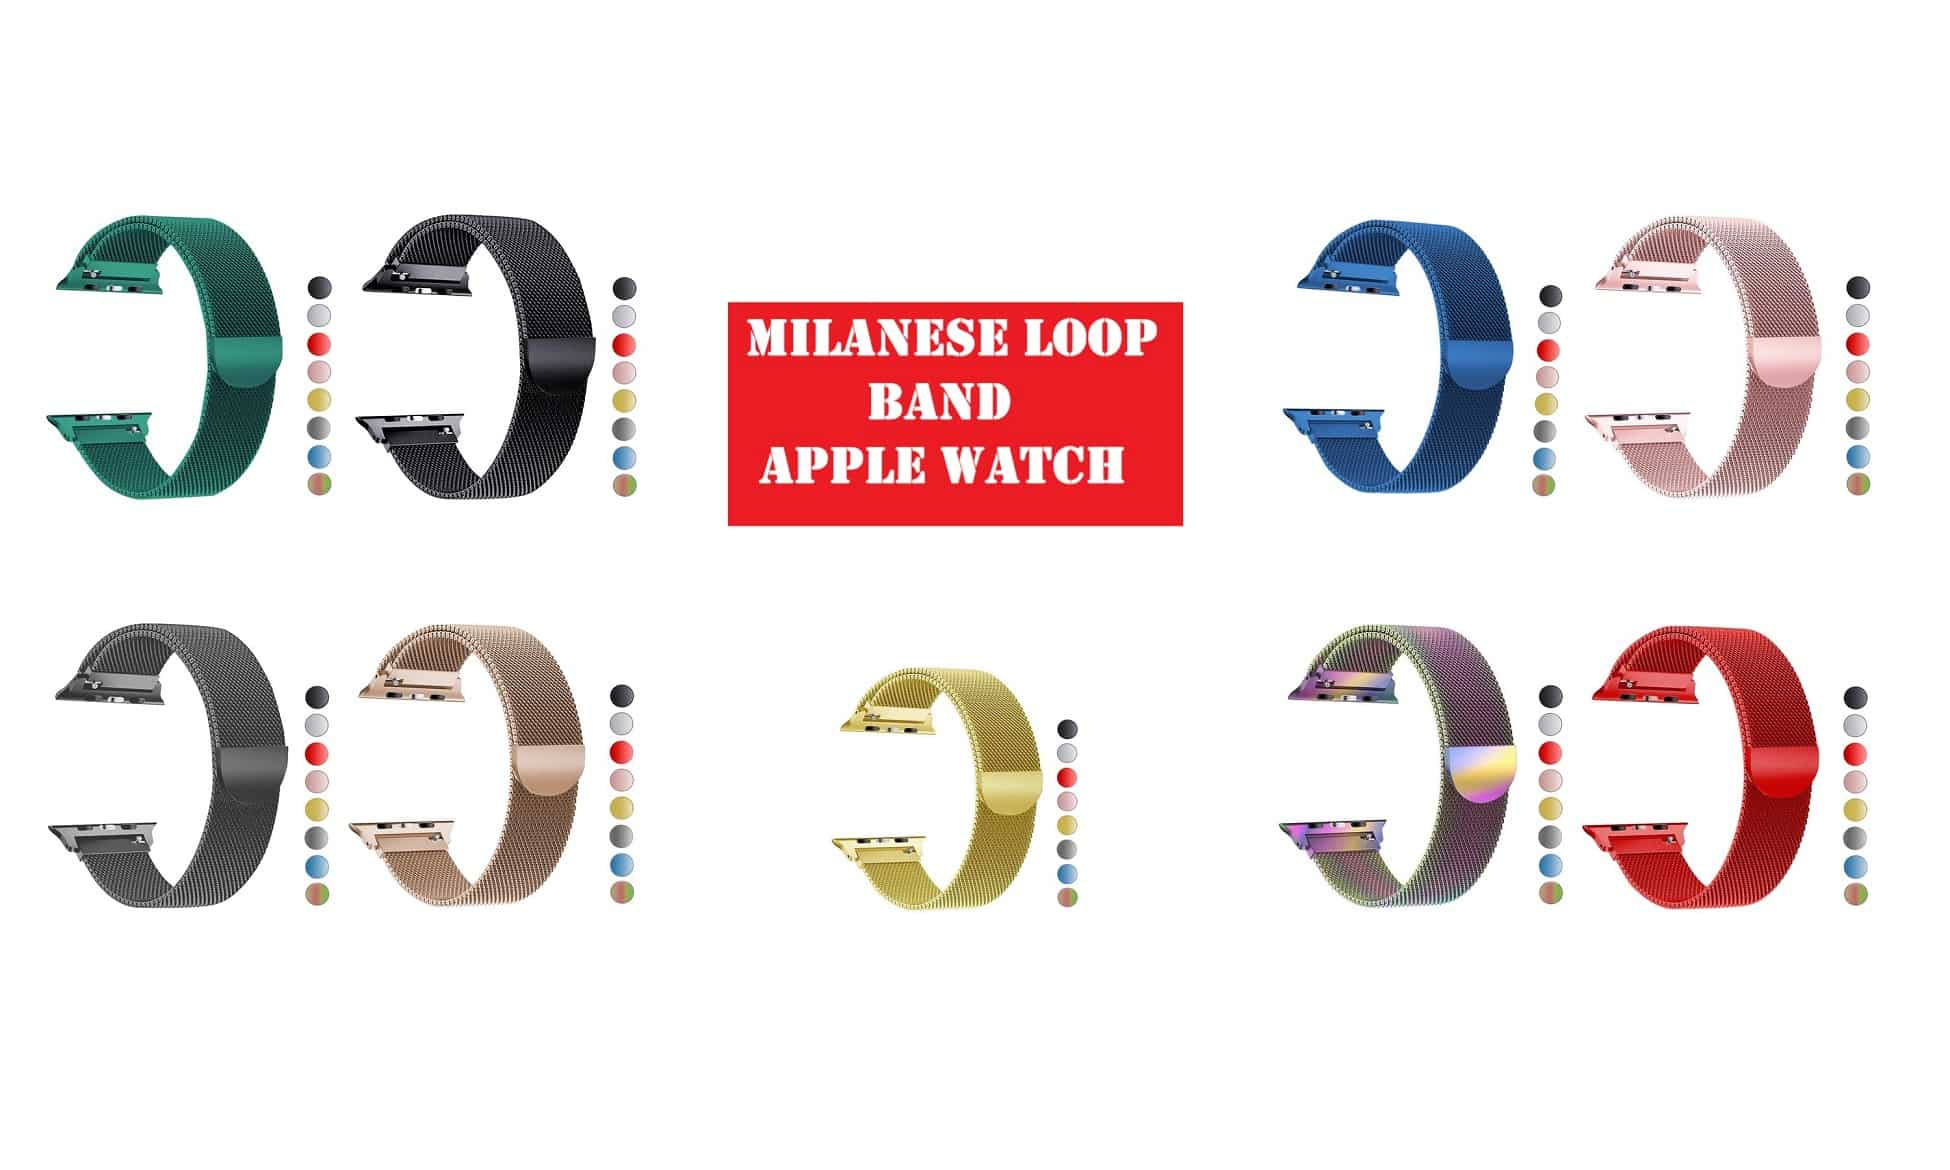 milanese_loop_band_for_apple_watch